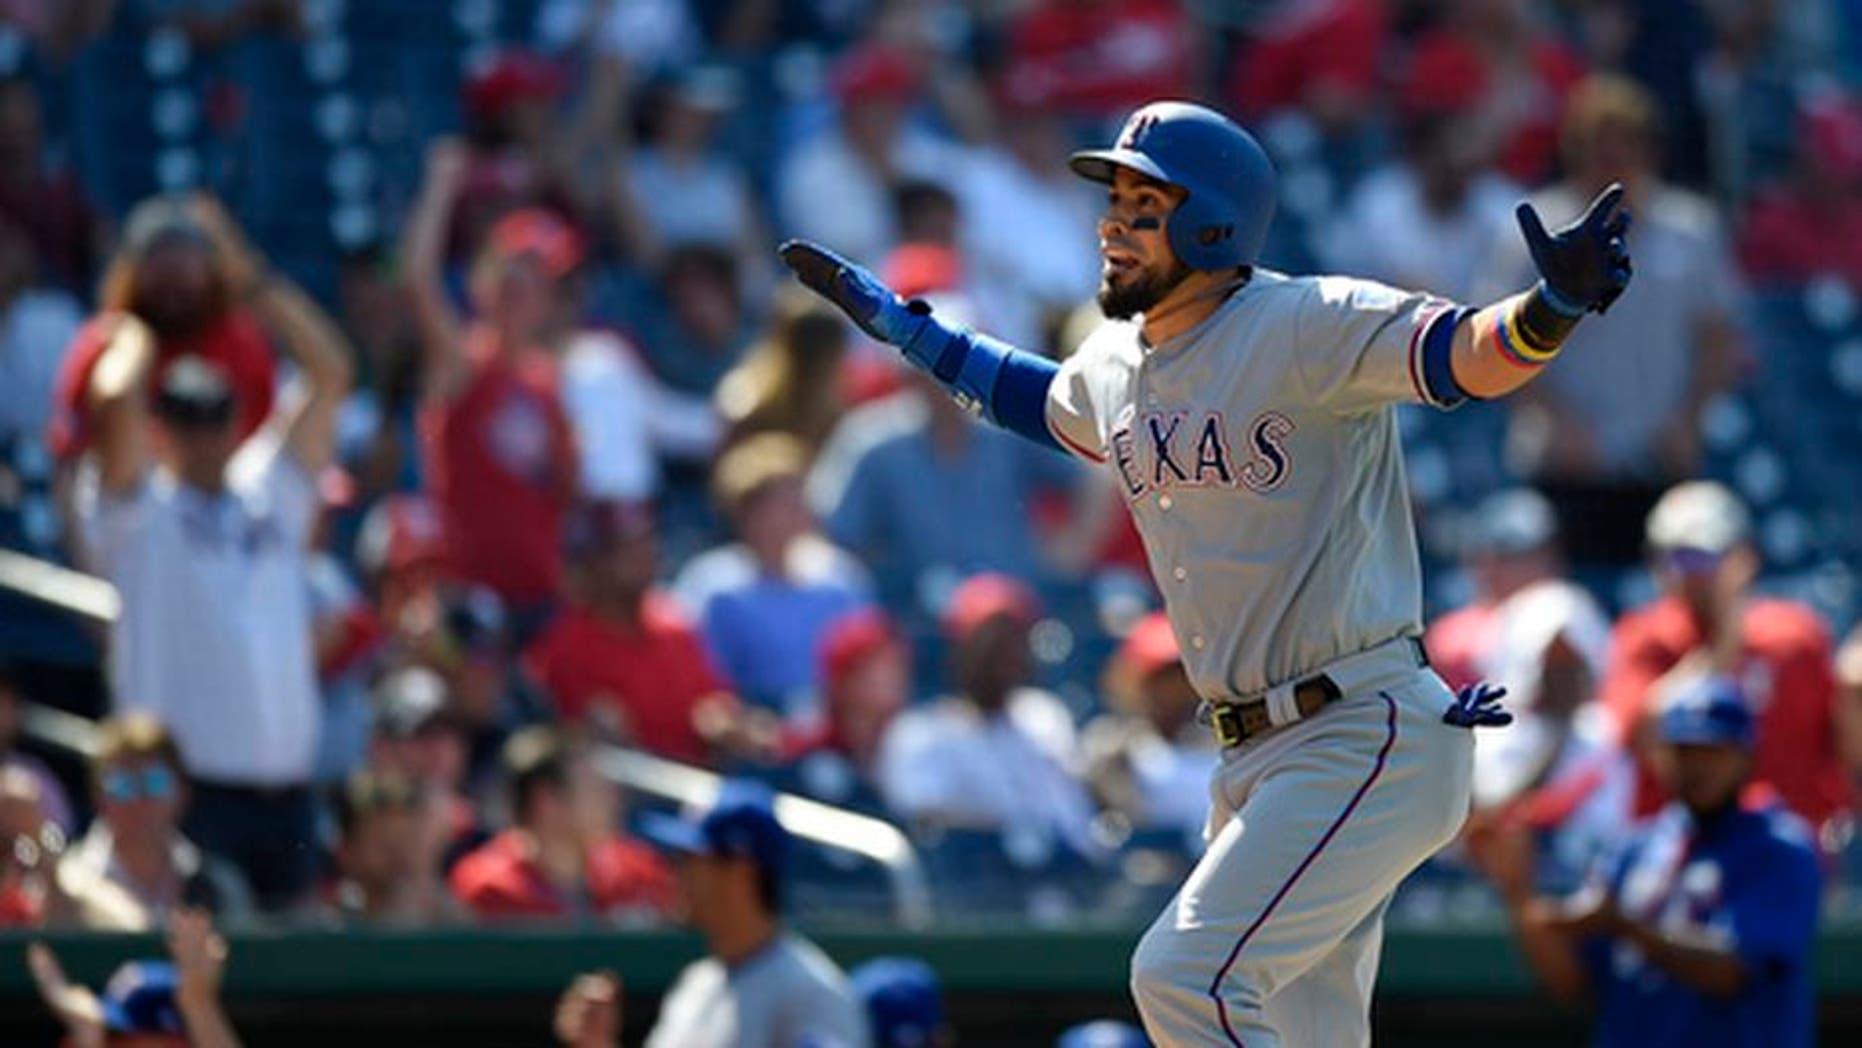 Texas Rangers' Robinson Chirinos reacts as he heads home after he hit a three-run home run during the 11th inning of a baseball game against the Washington Nationals, Saturday, June 10, 2017, in Washington. The Rangers won 6-3 in 11 innings. (AP Photo/Nick Wass)